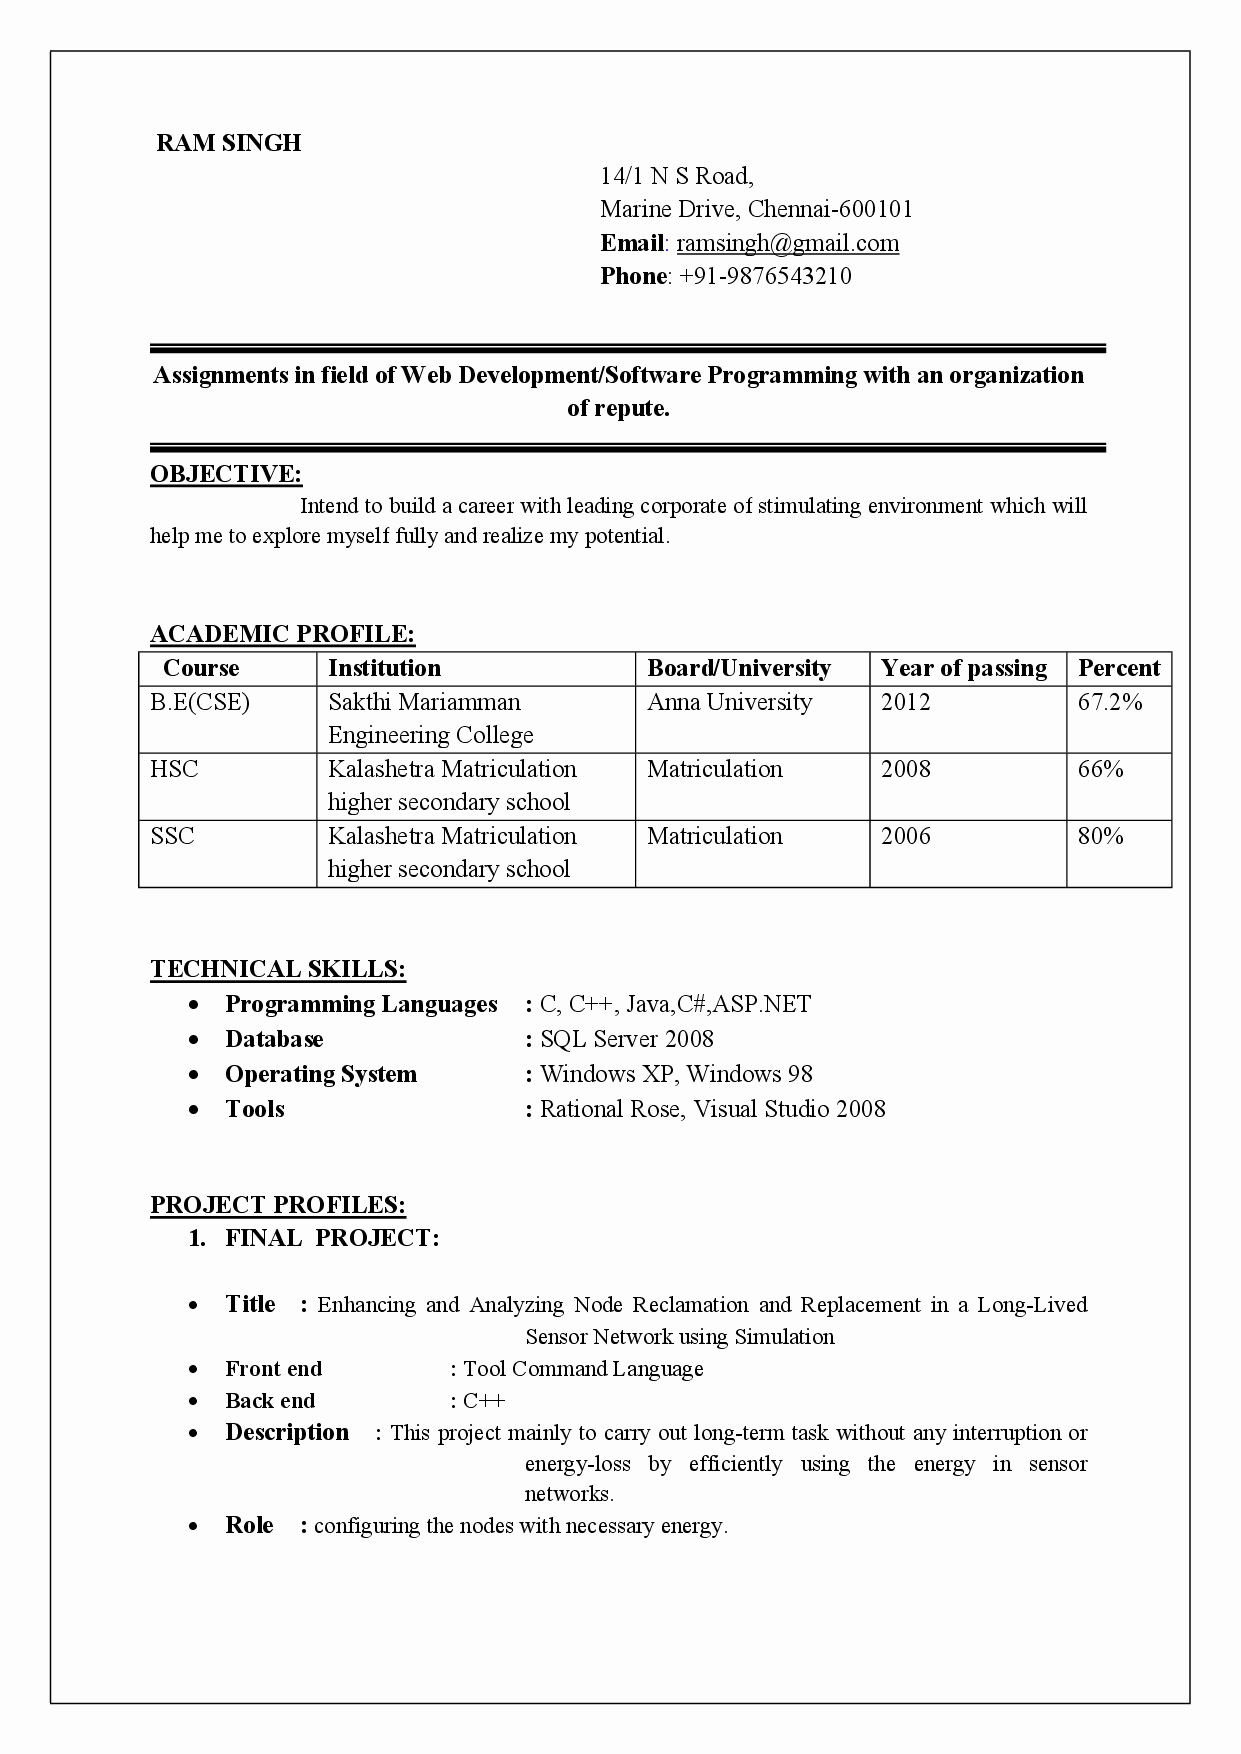 Computer Science Student Resume Fresh Achievements In Resume Examples for Freshers Achievements